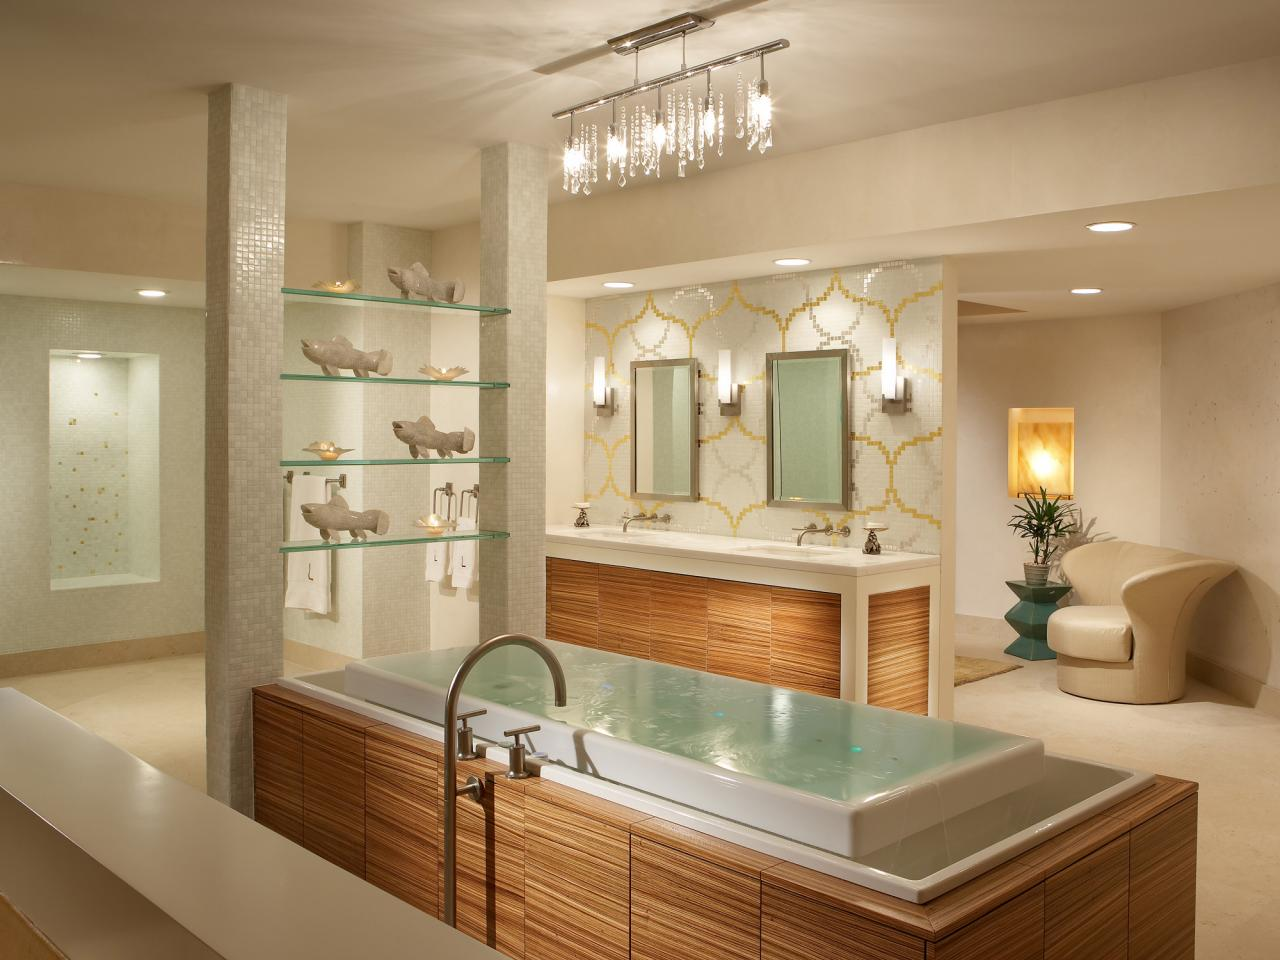 Bathroom layout dimensions - Bathroom Layouts That Work